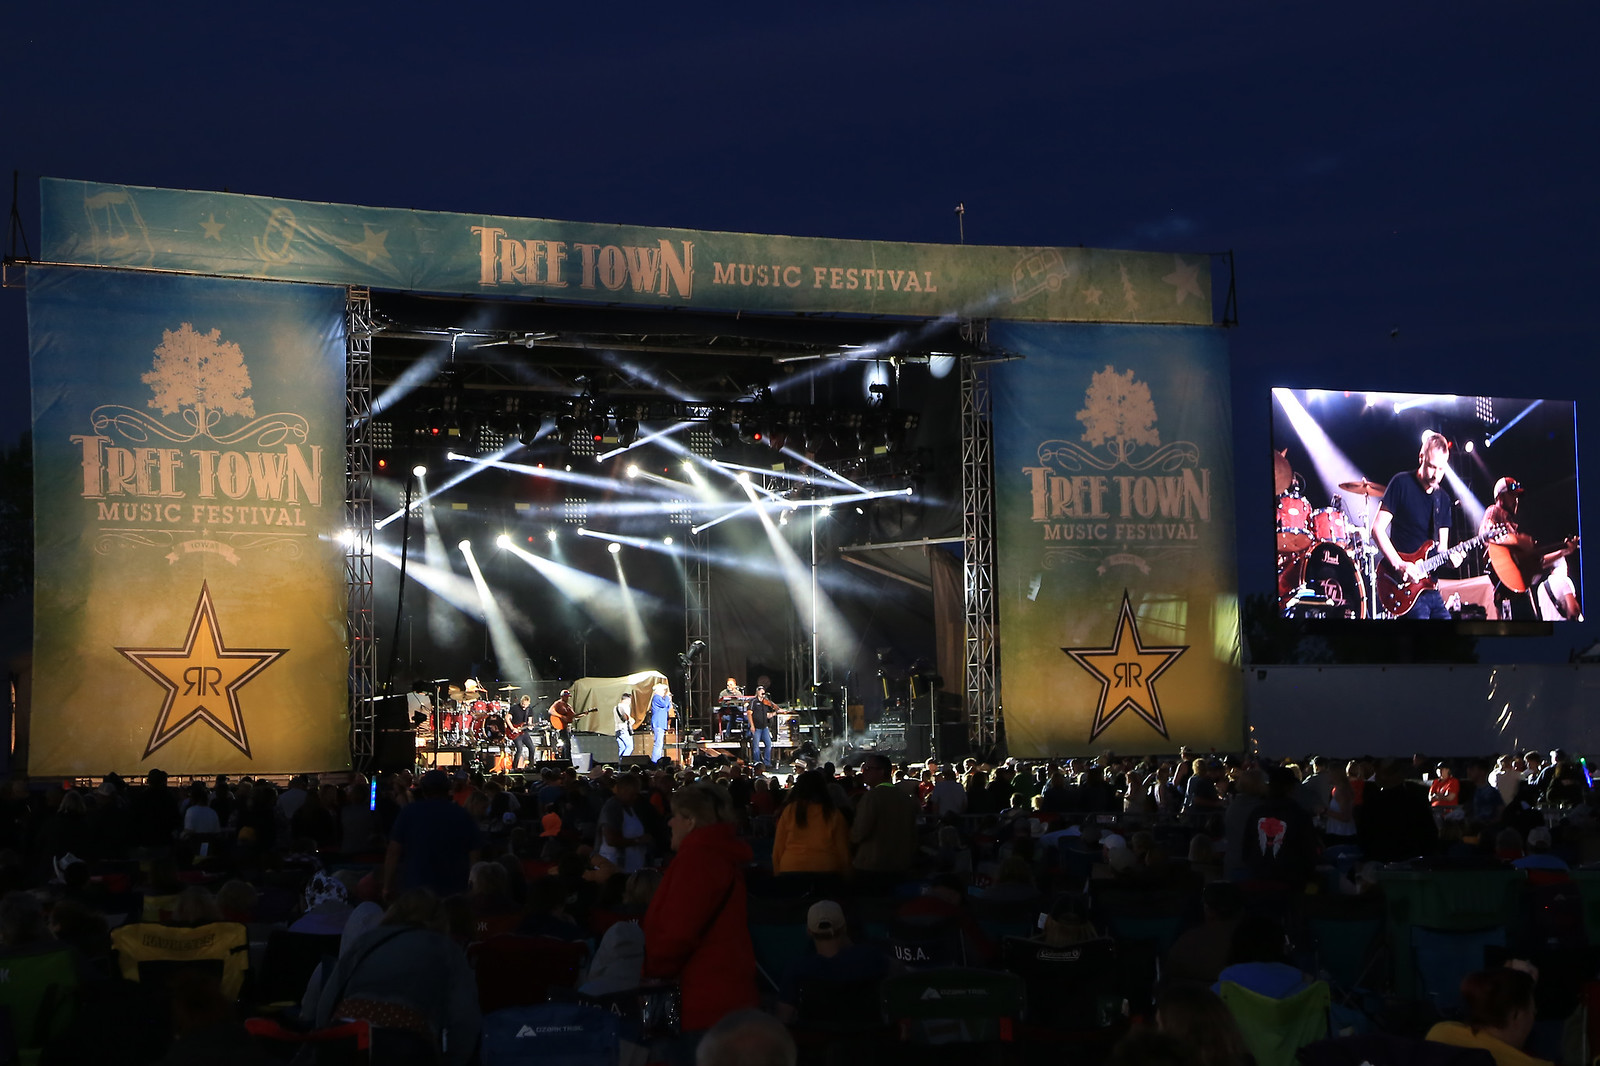 Tree Town Country Music Festival-2019 |